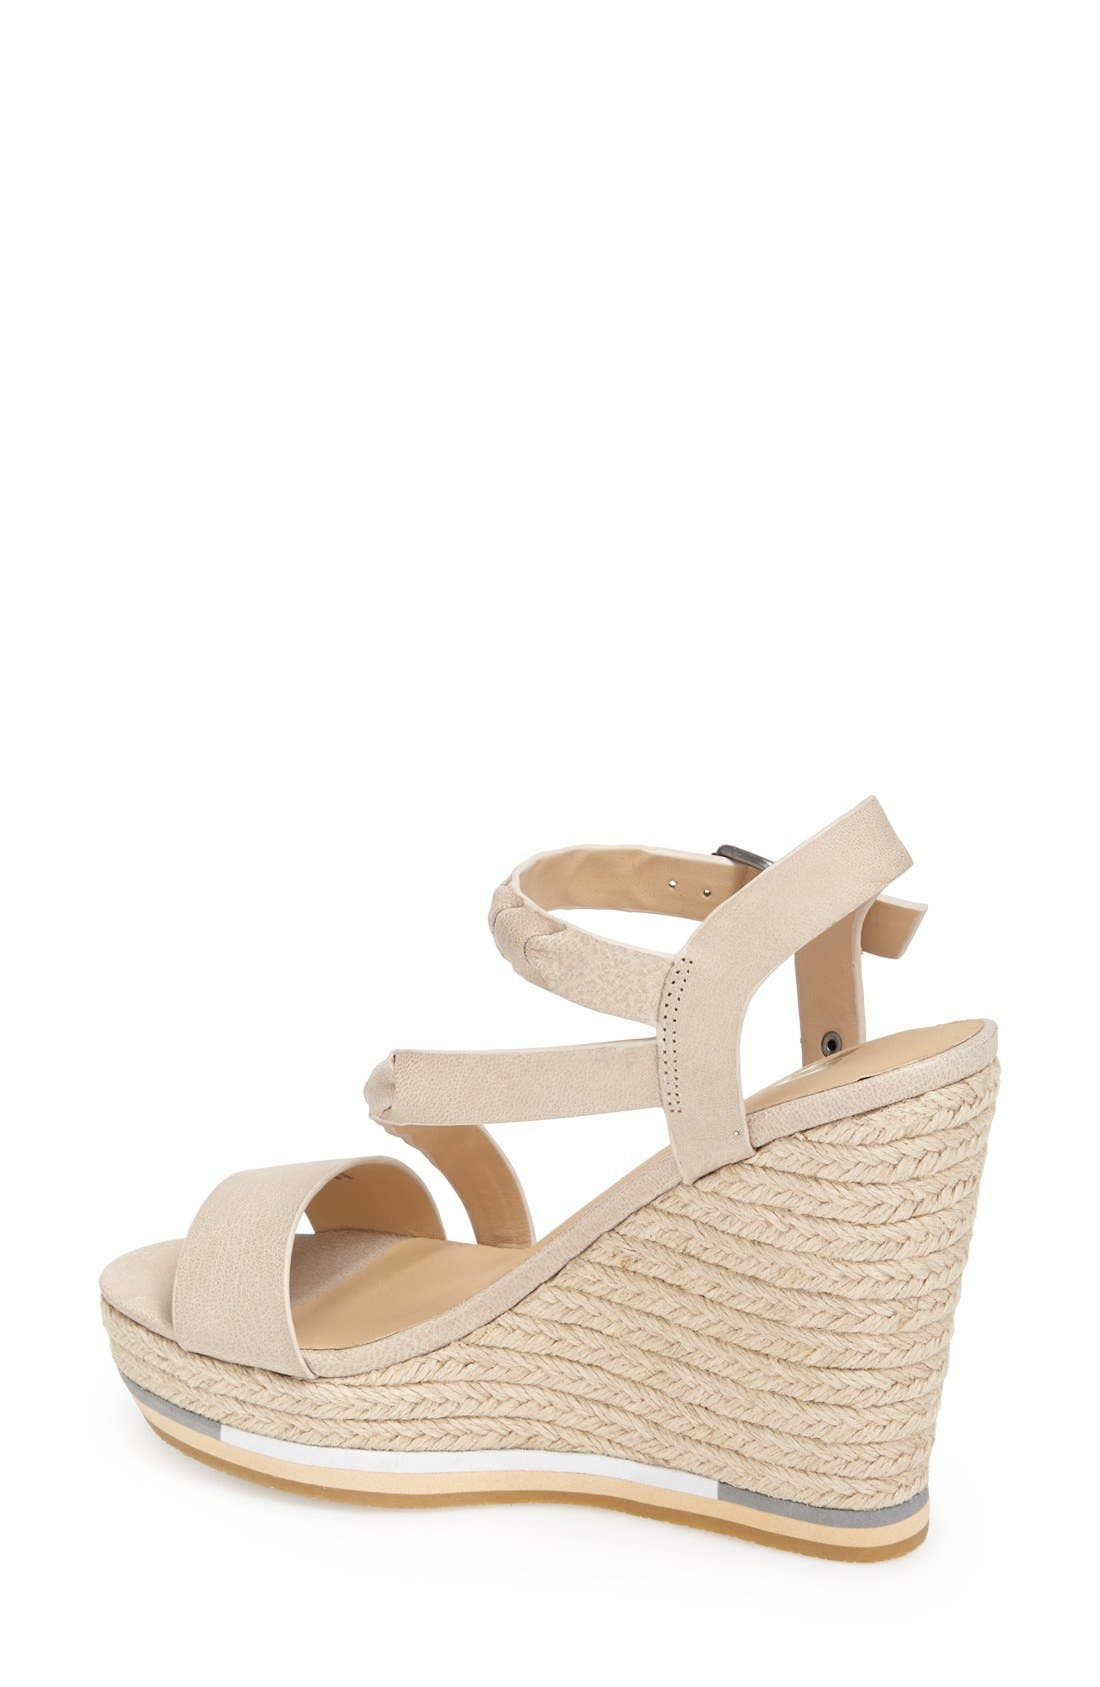 Alternate Image 2  - Joe's 'Rane' Espadrille Wedge Sandal (Women)